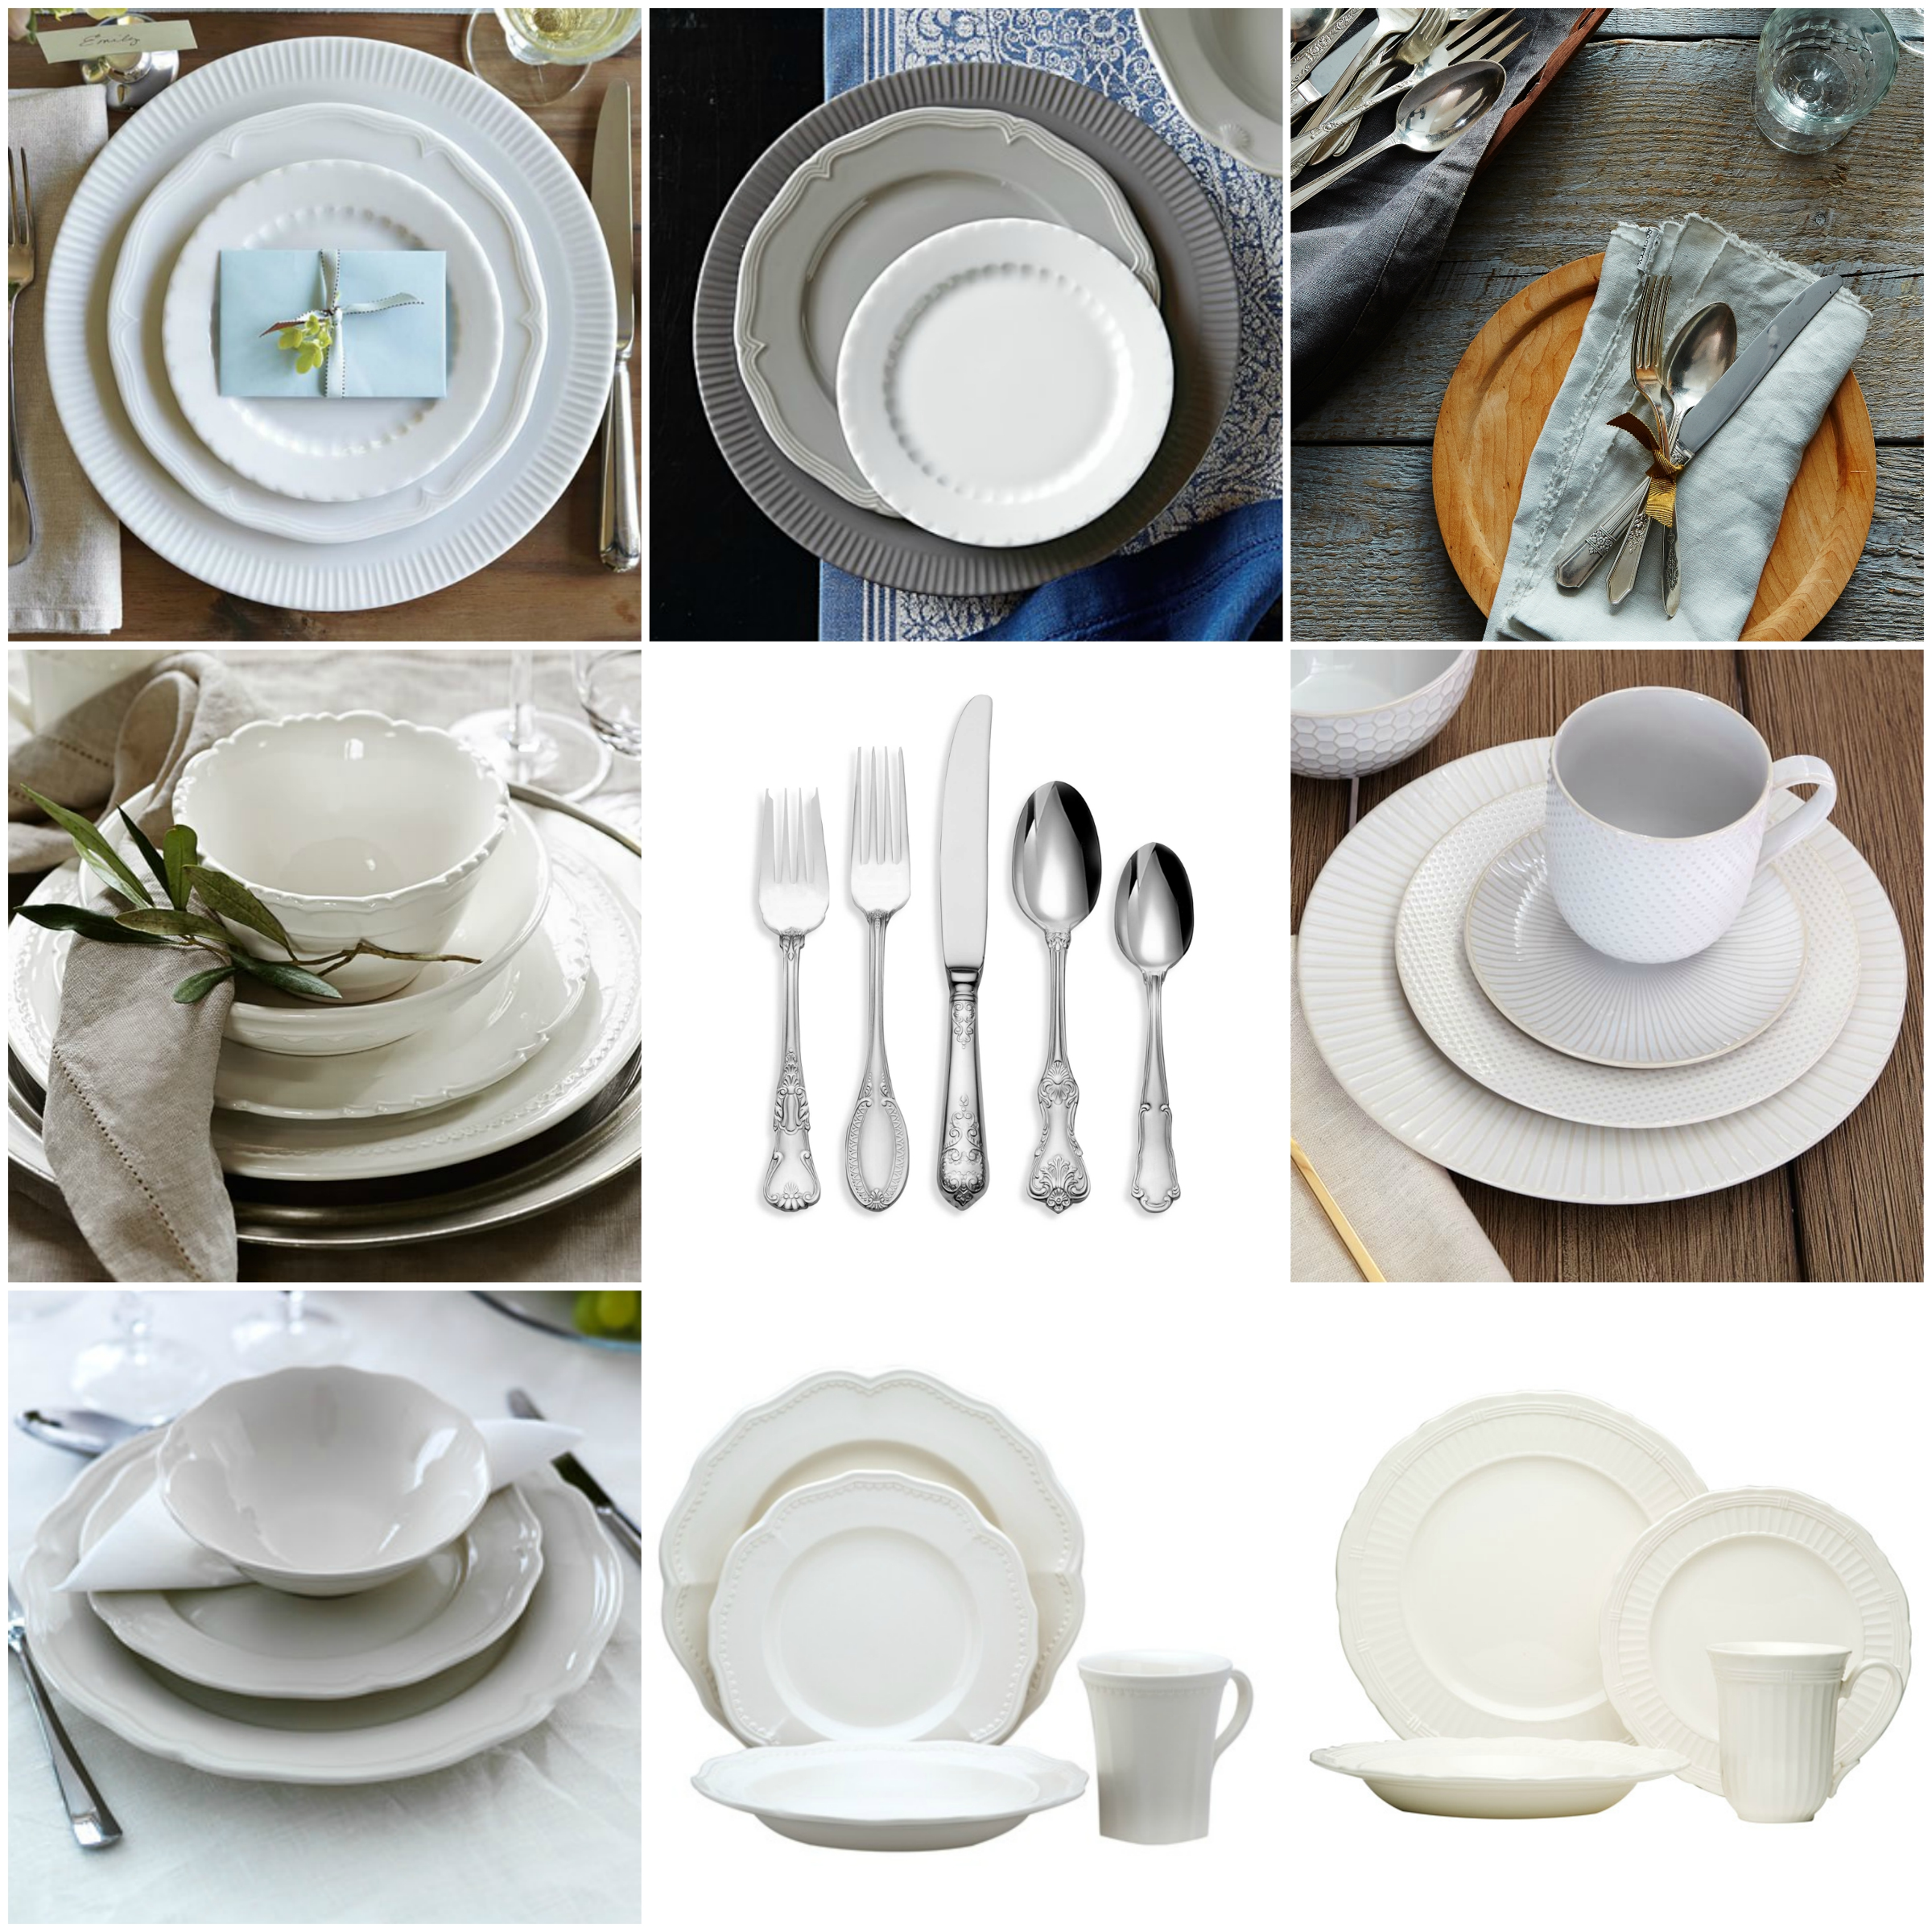 Nosherium Mismatch Dinnerware : dinnerware mix and match - pezcame.com